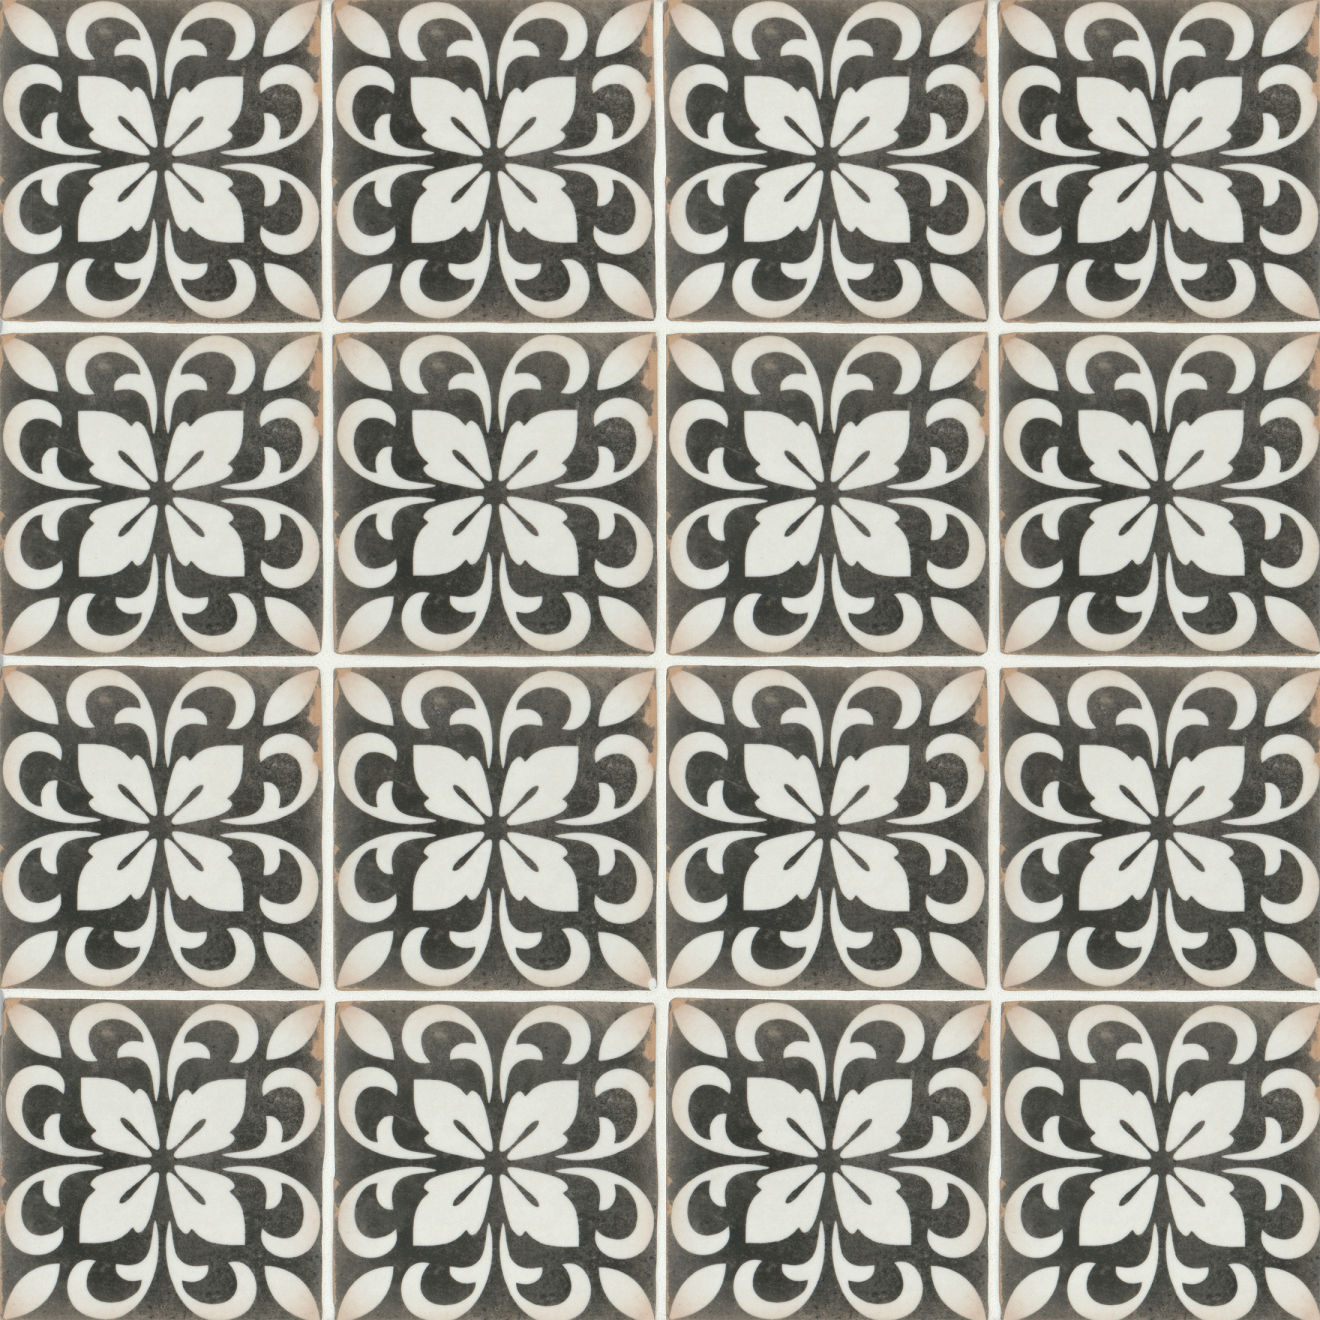 "Casablanca 5"" x 5"" Matte Ceramic Floor and Wall Tile in Rialto"